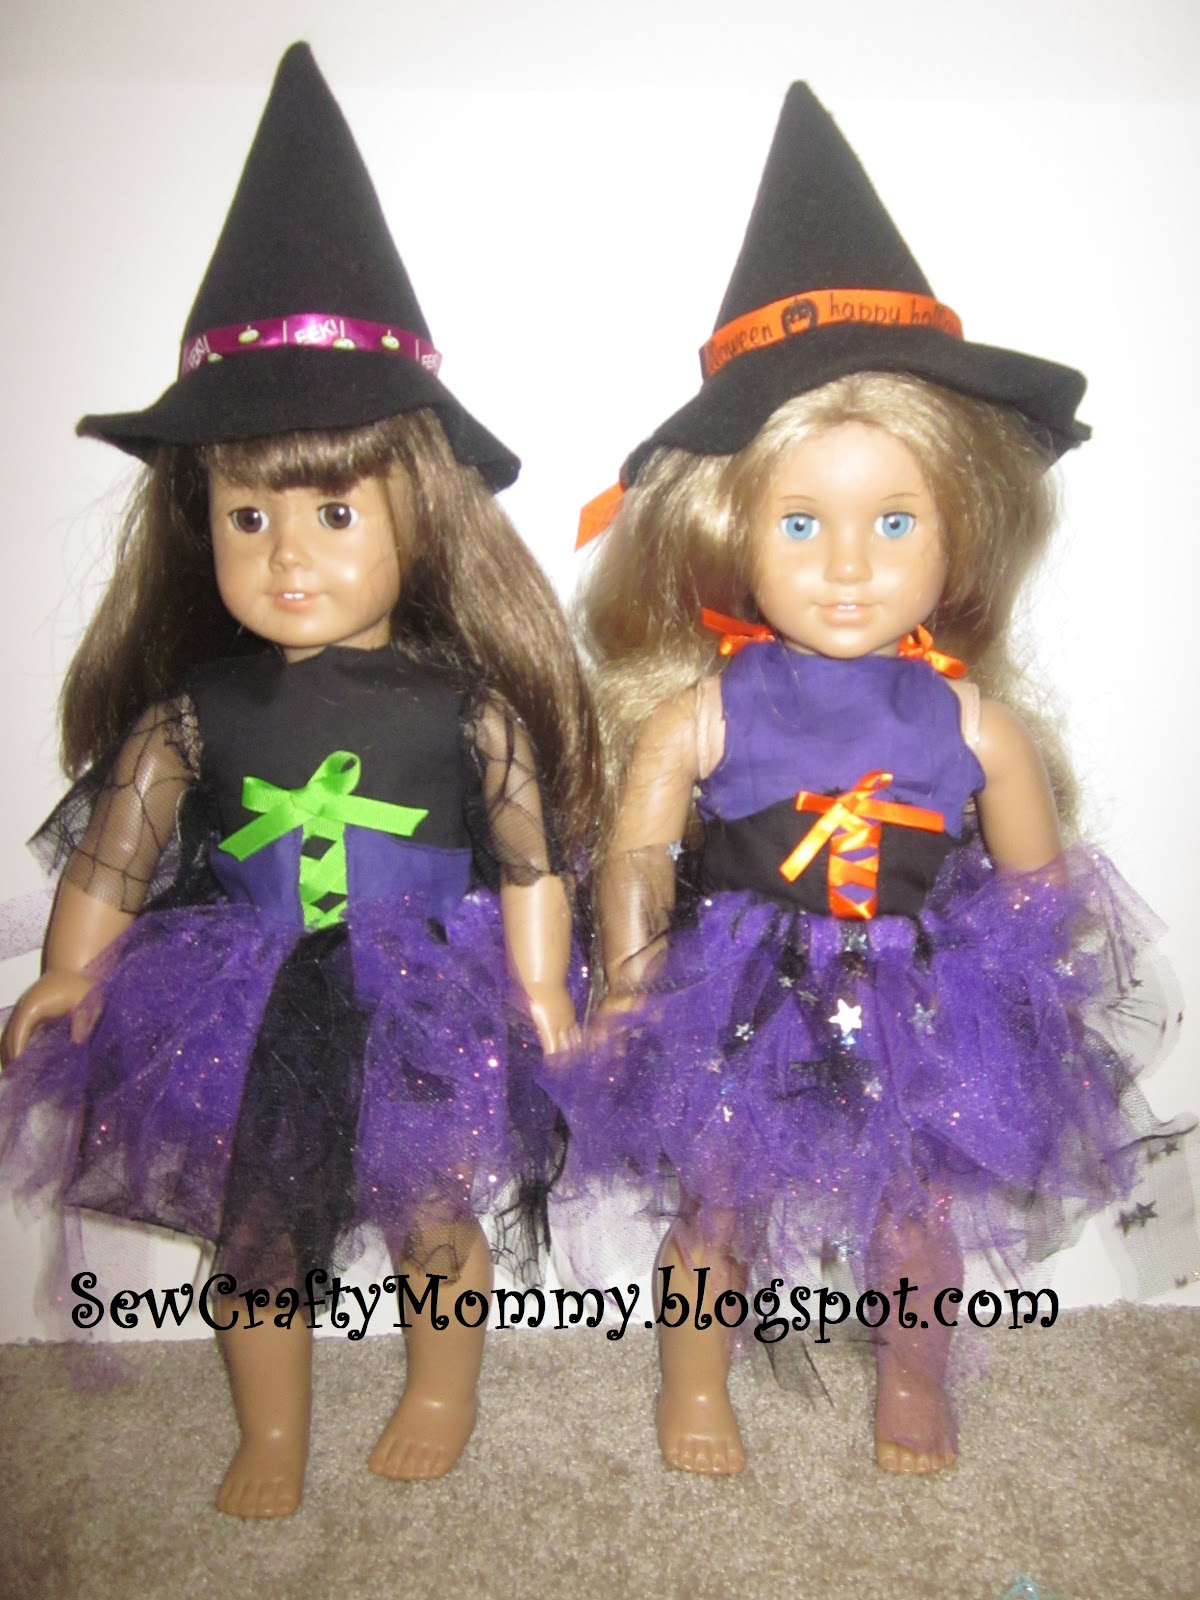 Sew Crafty Mommy: American Girl Doll Halloween